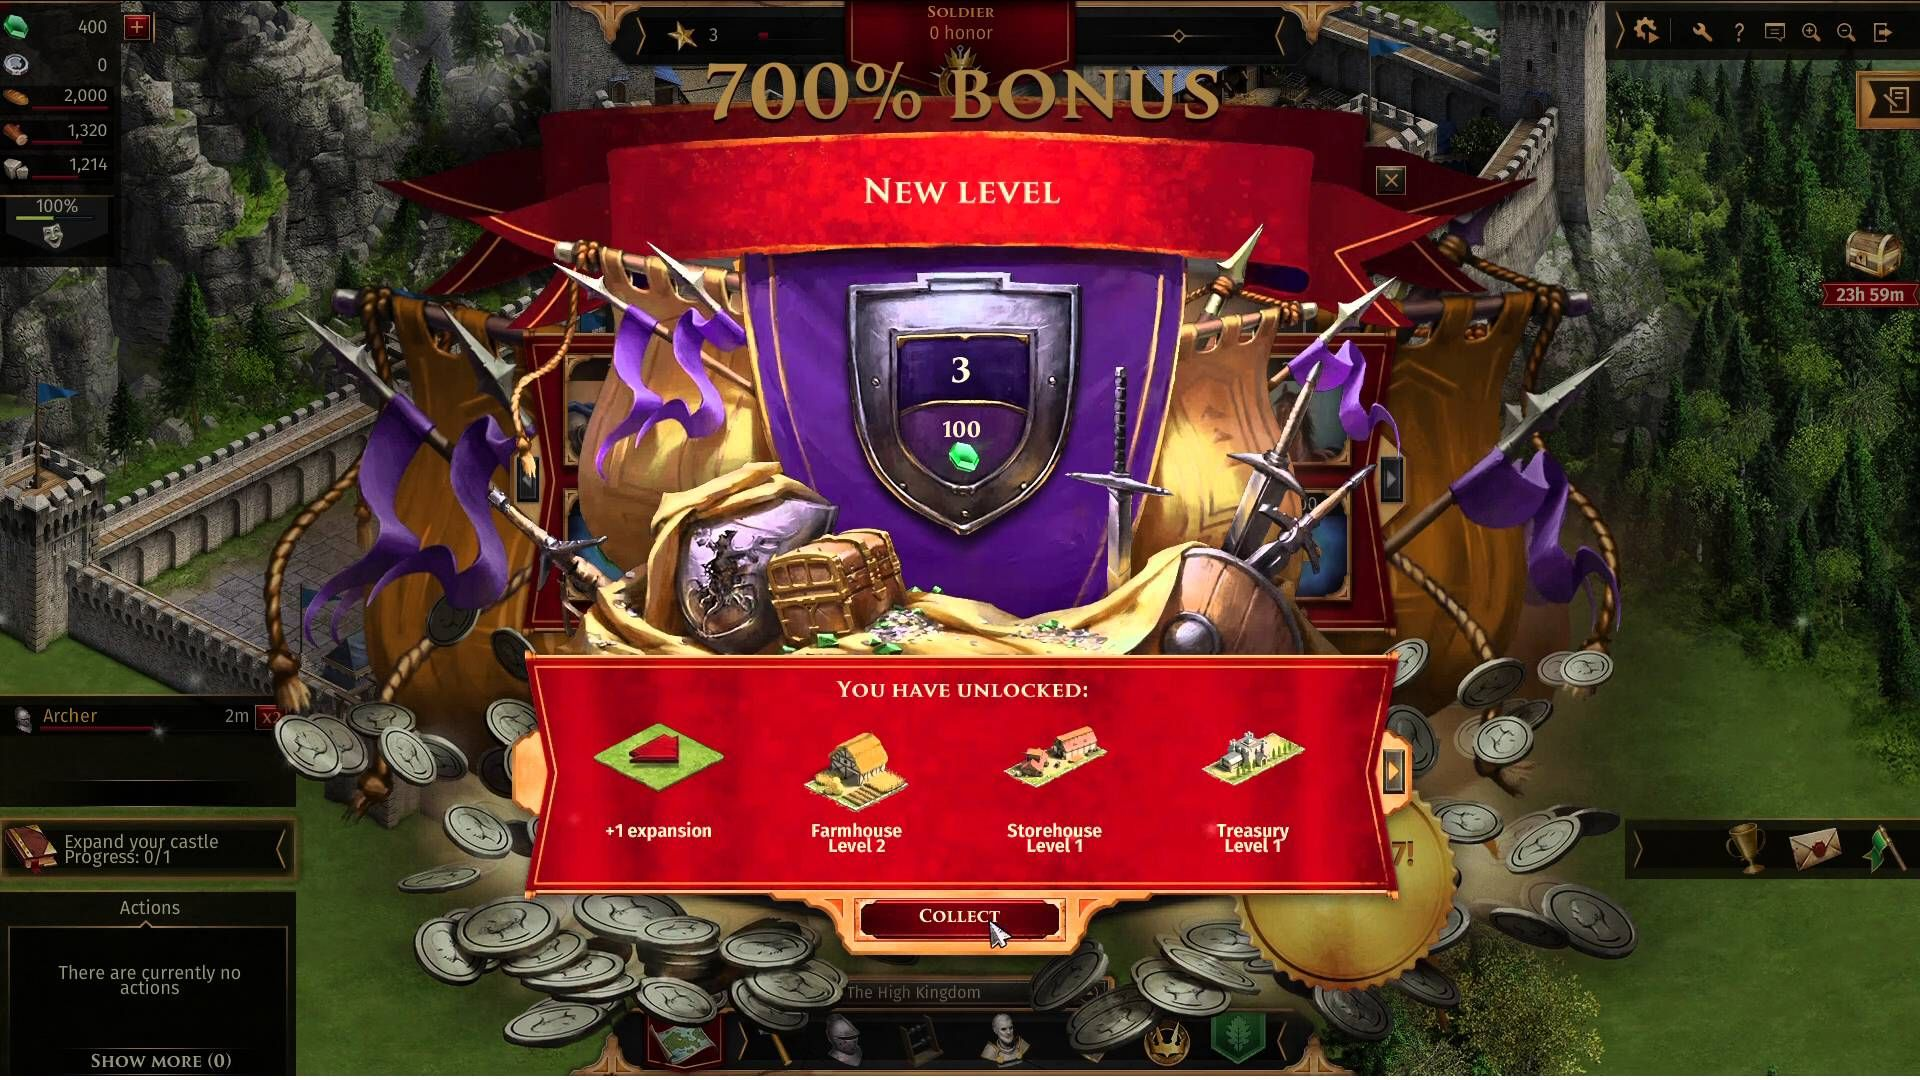 Legends of honor raw gaming 1 legends of honor is a free to play legends of honor raw gaming 1 legends of honor is a free to play browse based building and strategy mmo game featuring an interactive world map gumiabroncs Images